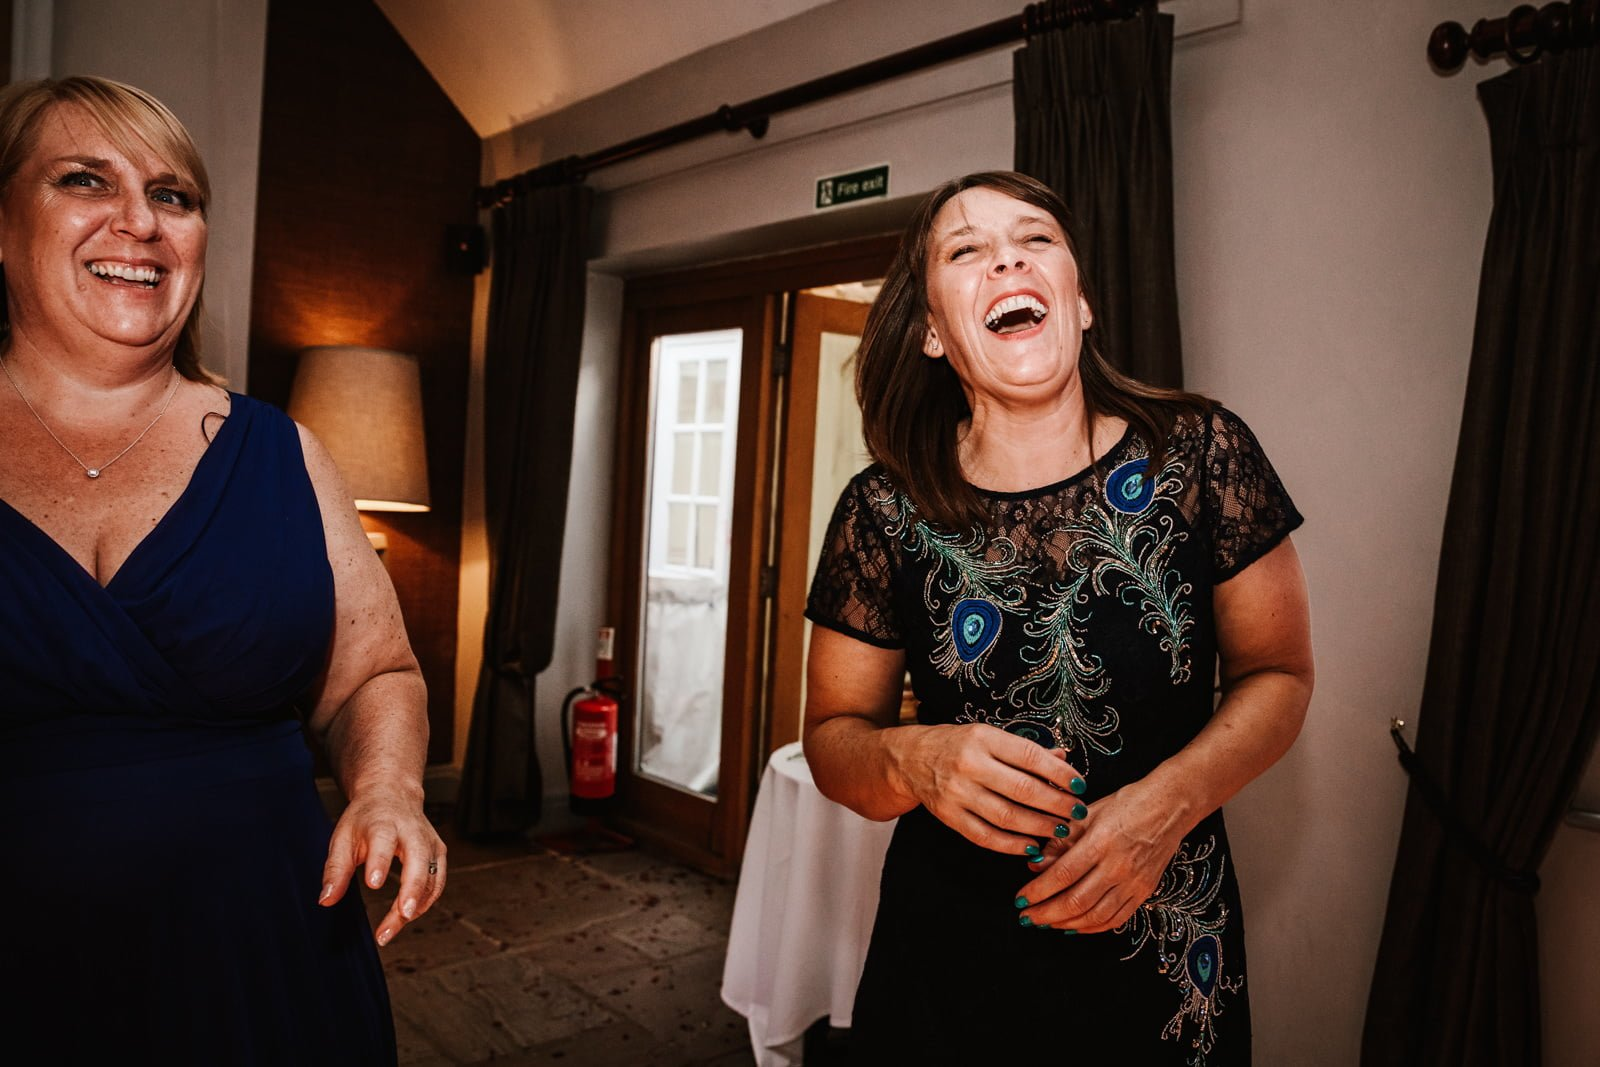 Mum laughing on the dance floor